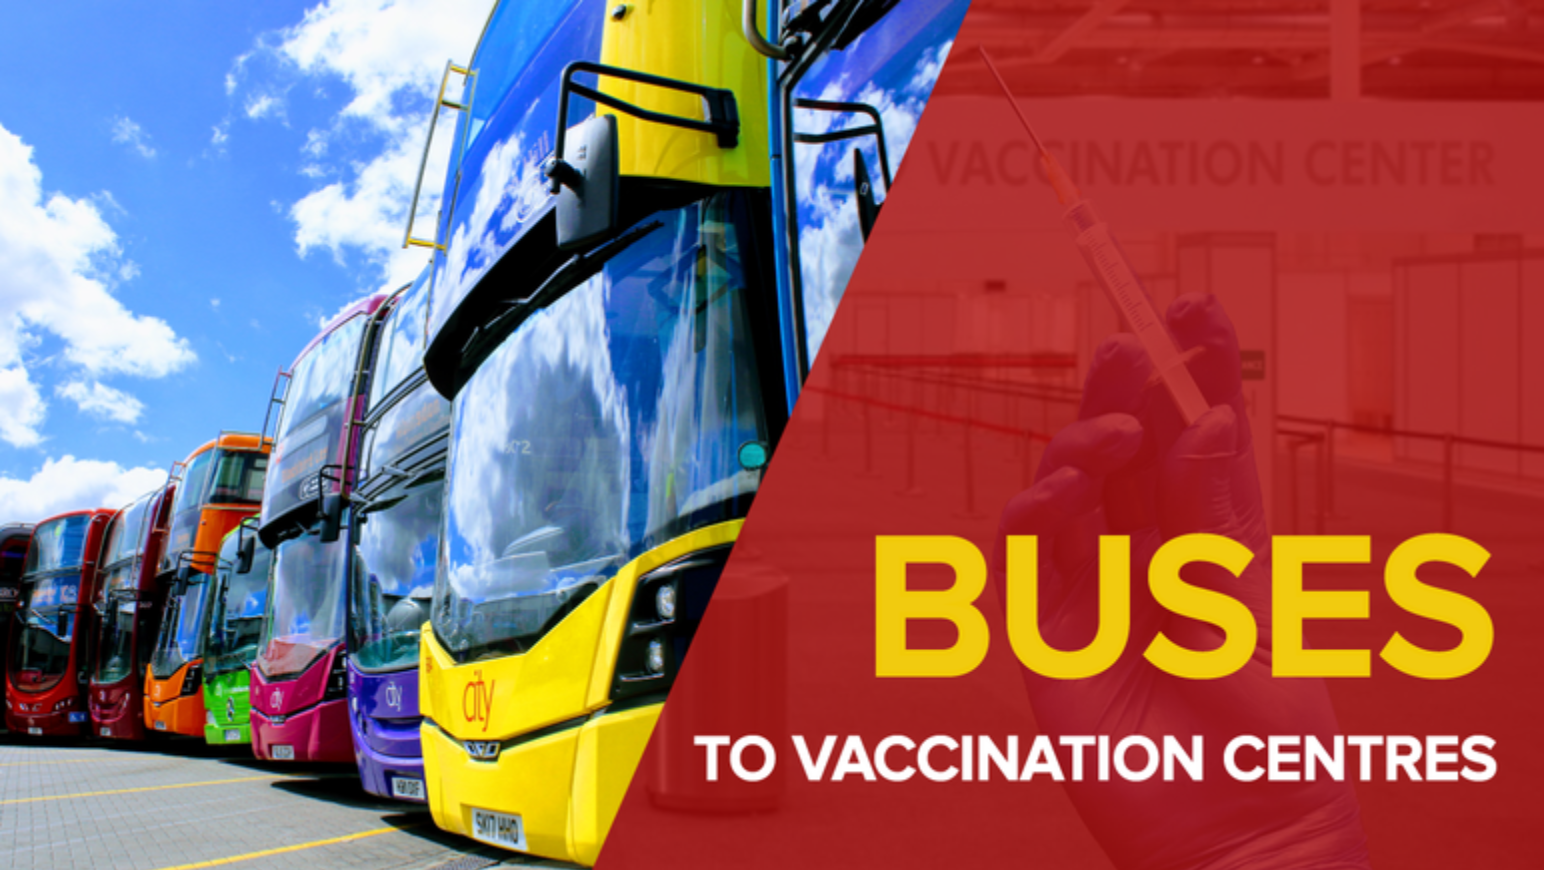 Image reading 'buses to vaccination centres'